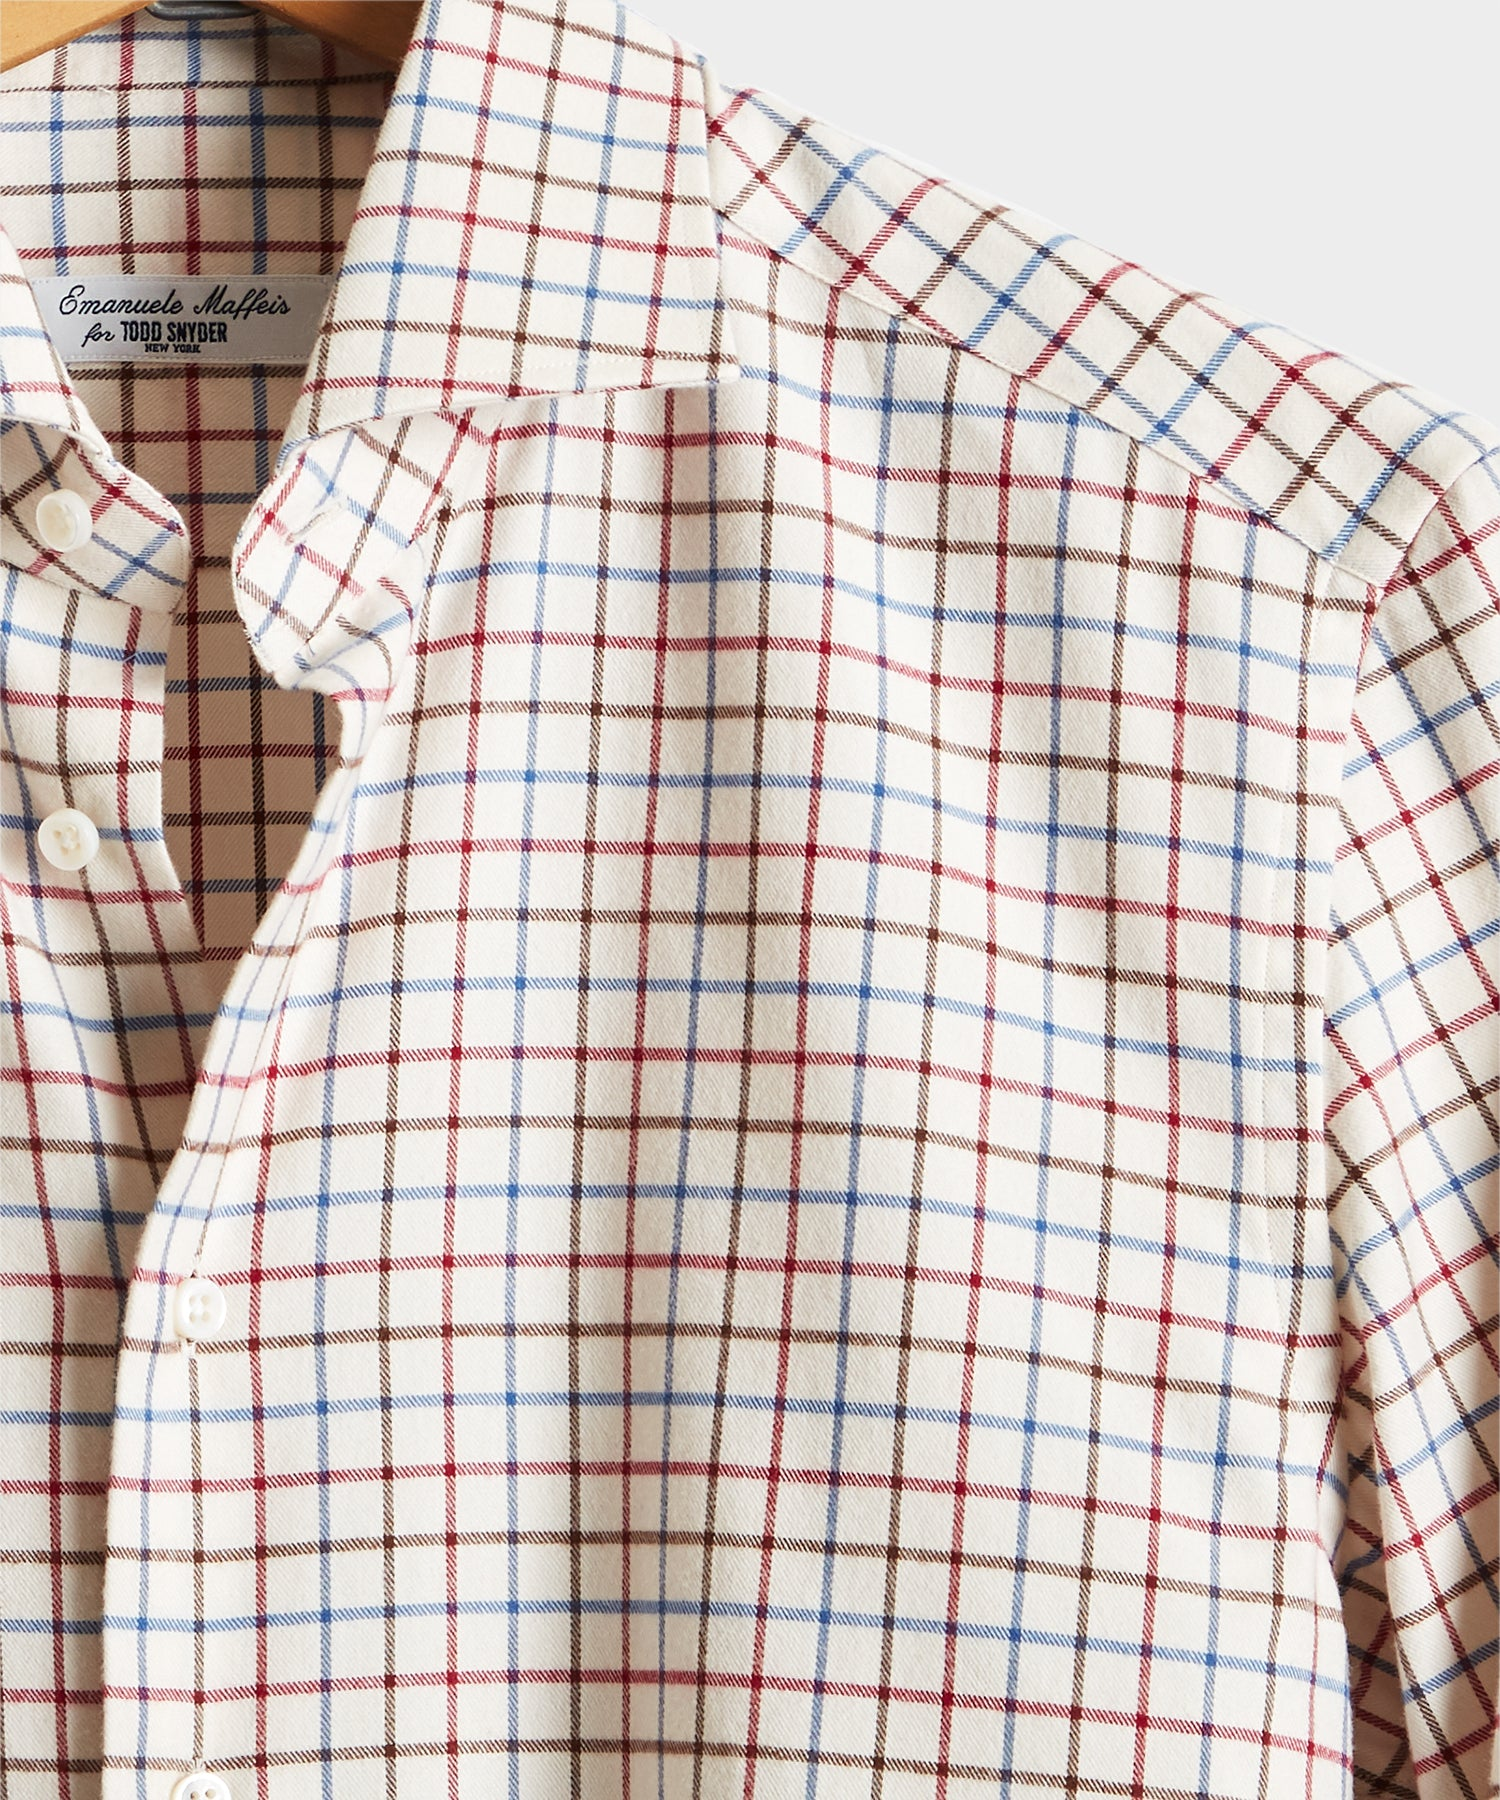 Camiceria E. Maffeis Tattersall Brushed Cotton Shirt